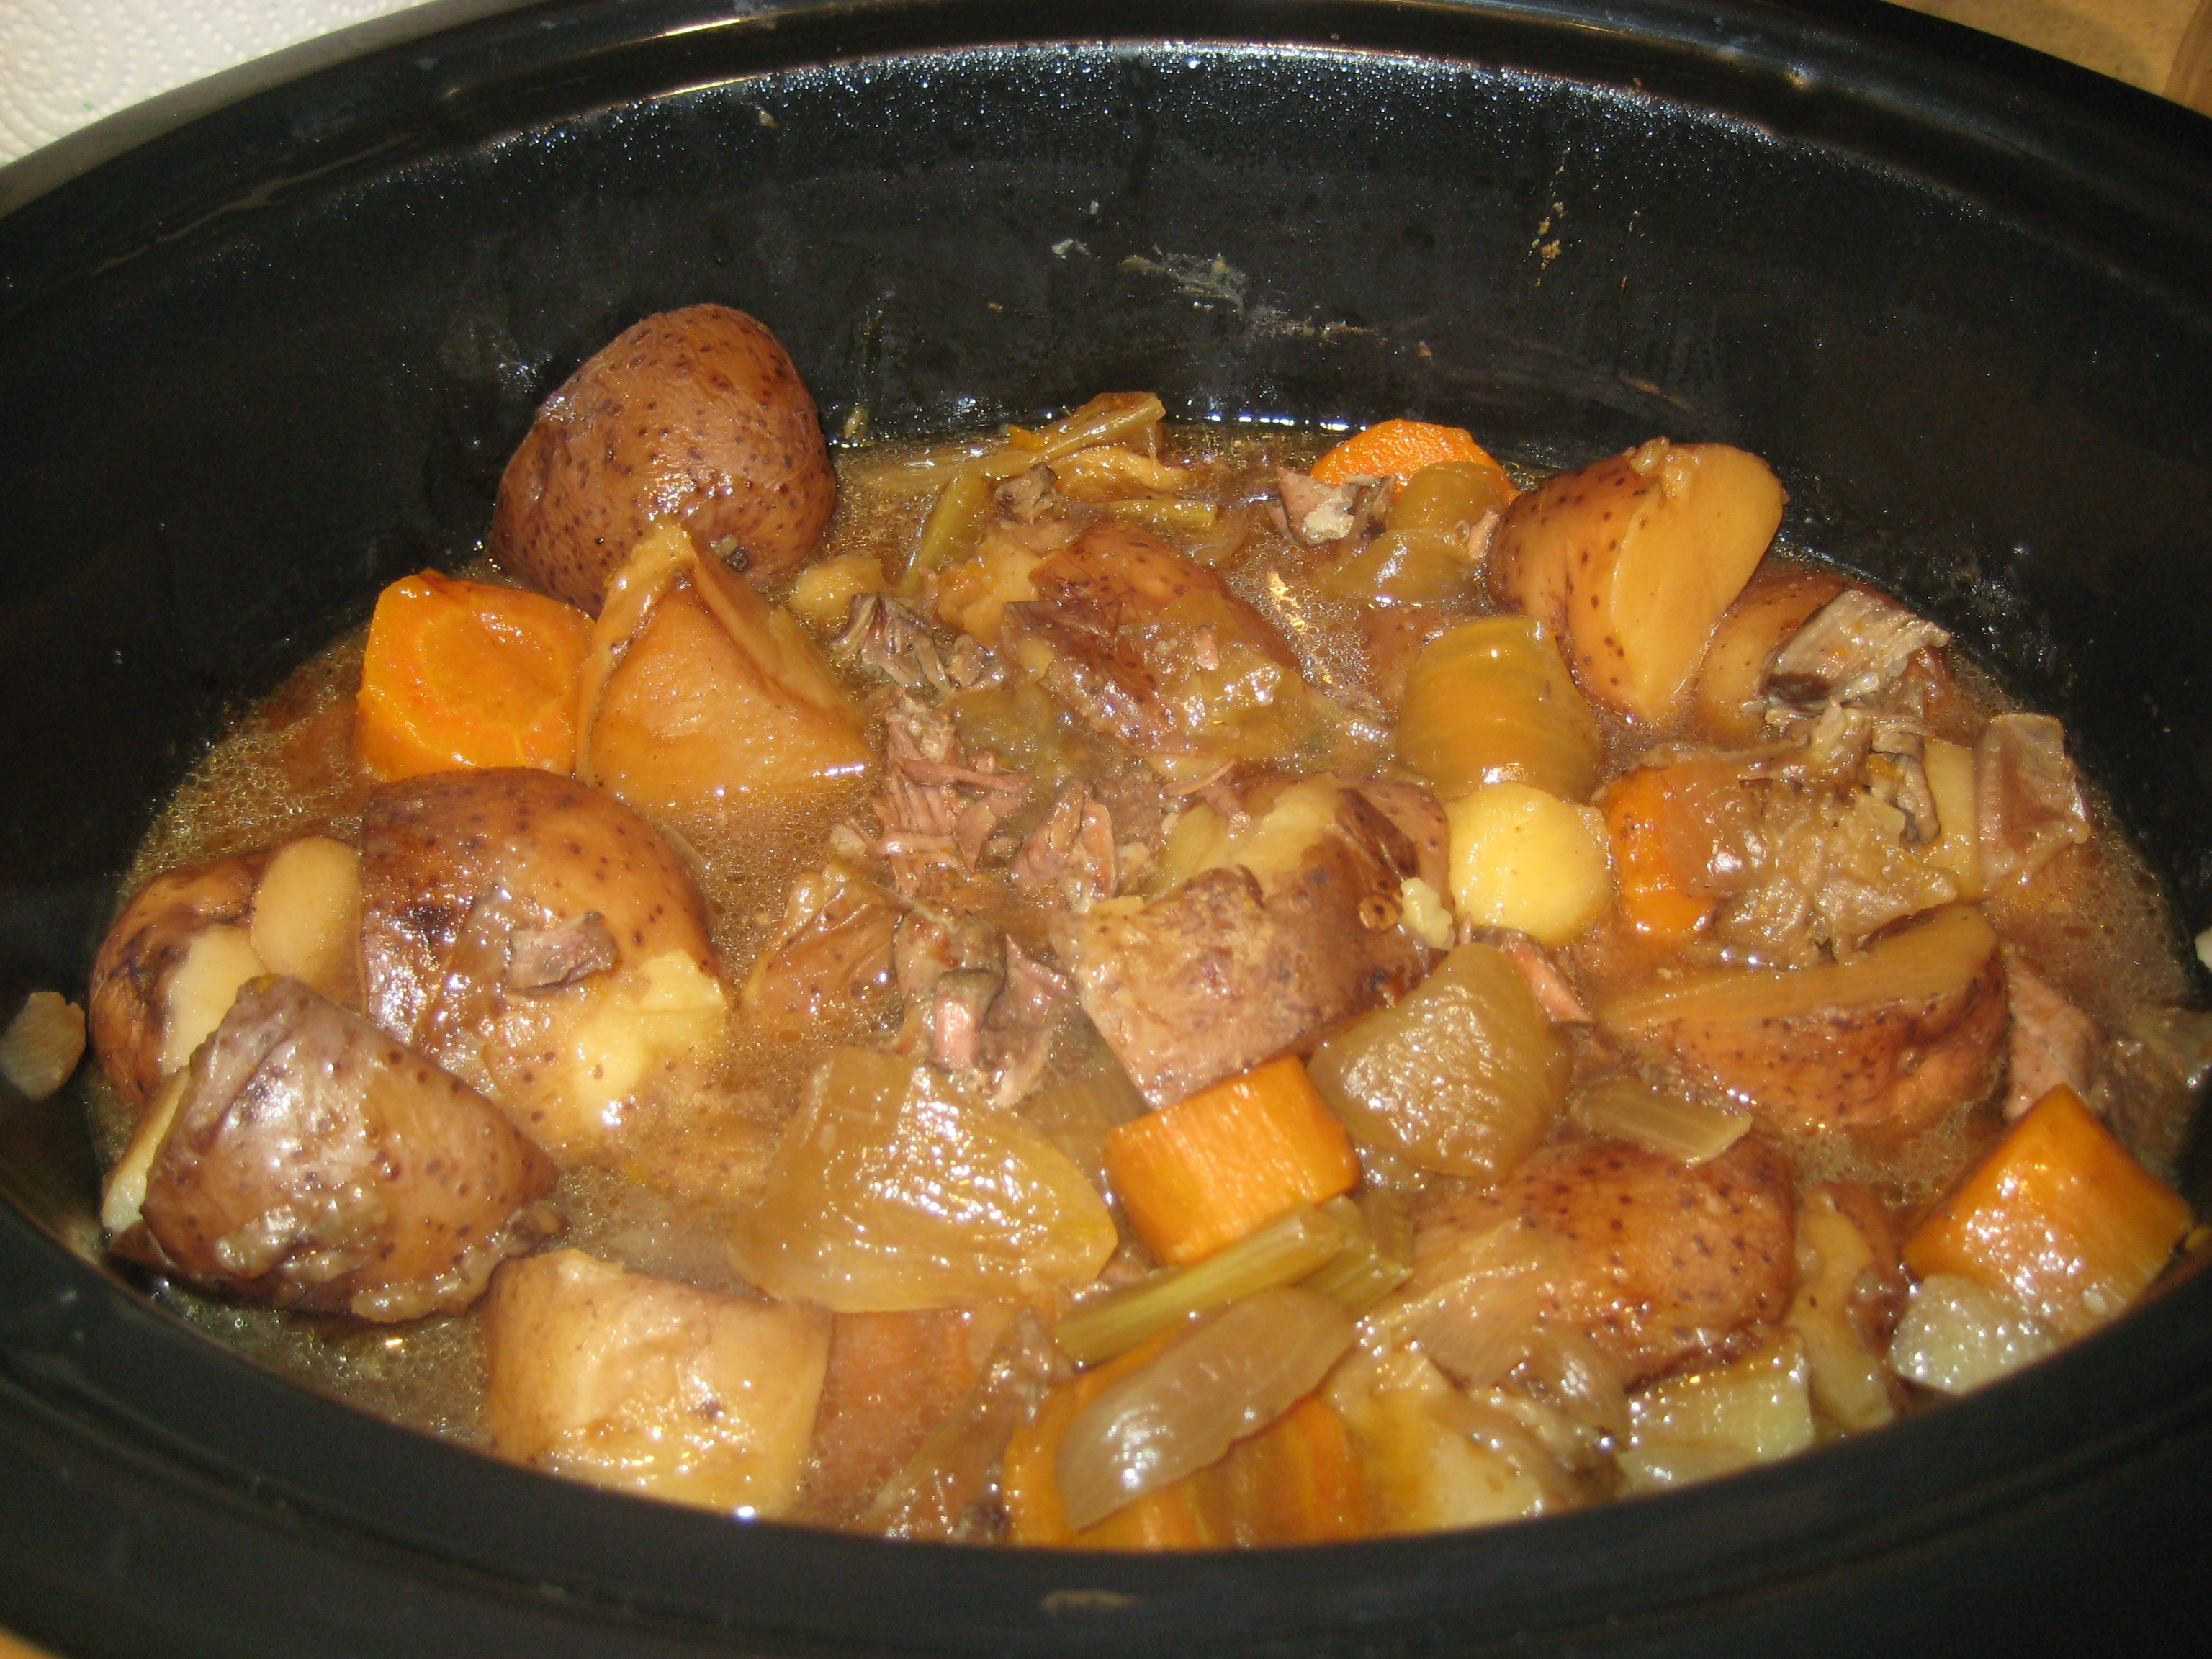 ... pork with crock pot wonder slow cooker pork pot roast slow cooker dr